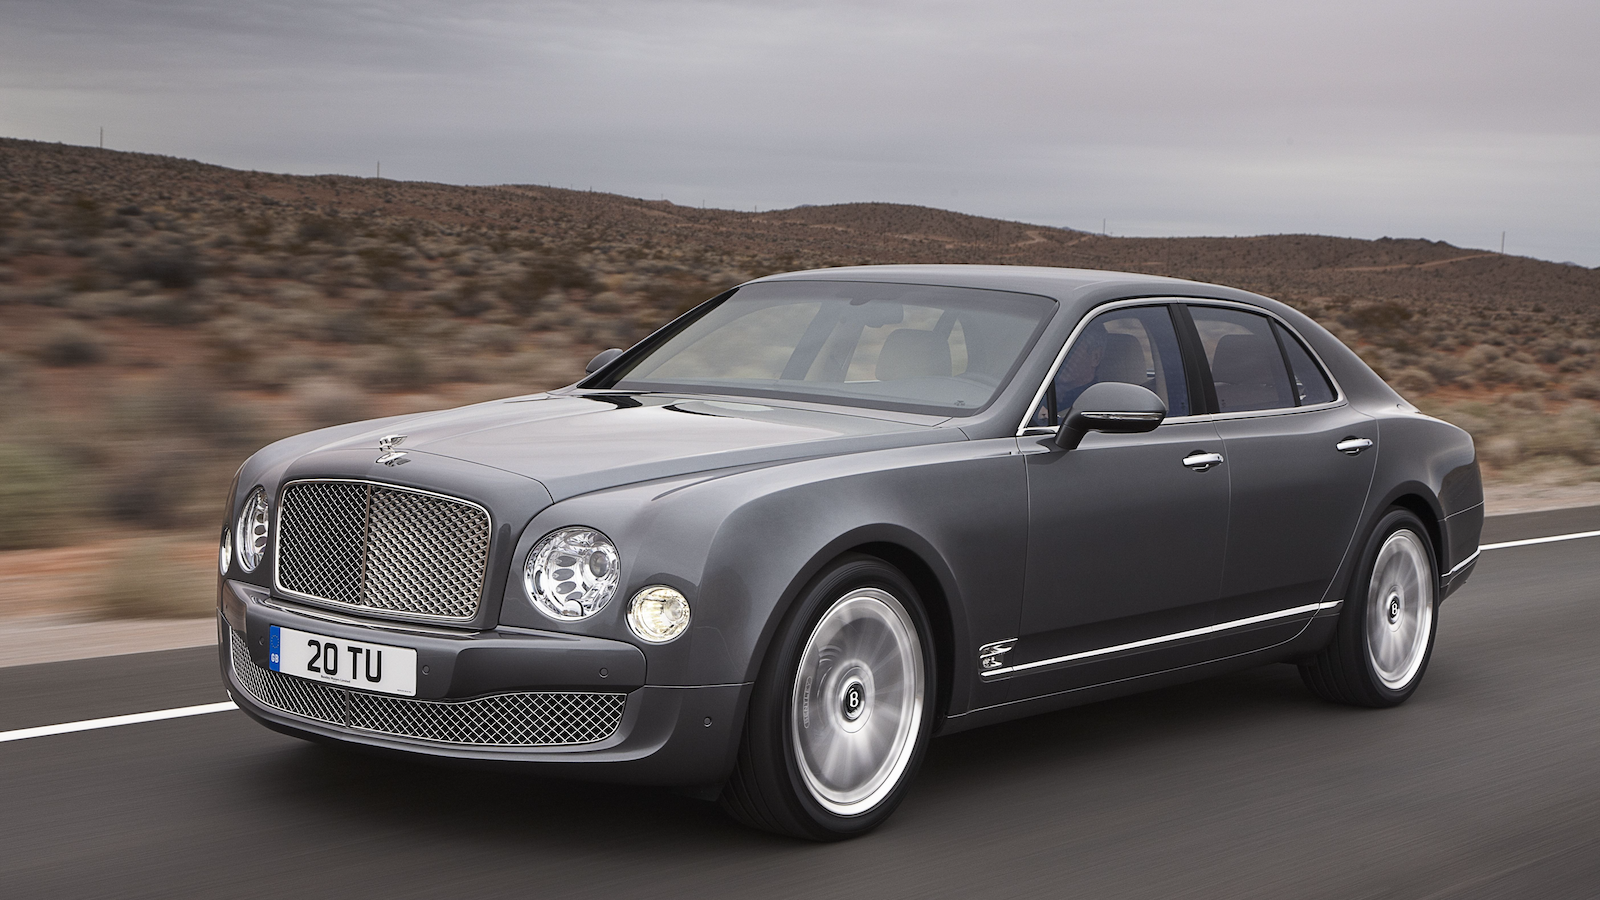 Bentley's V8 bows out